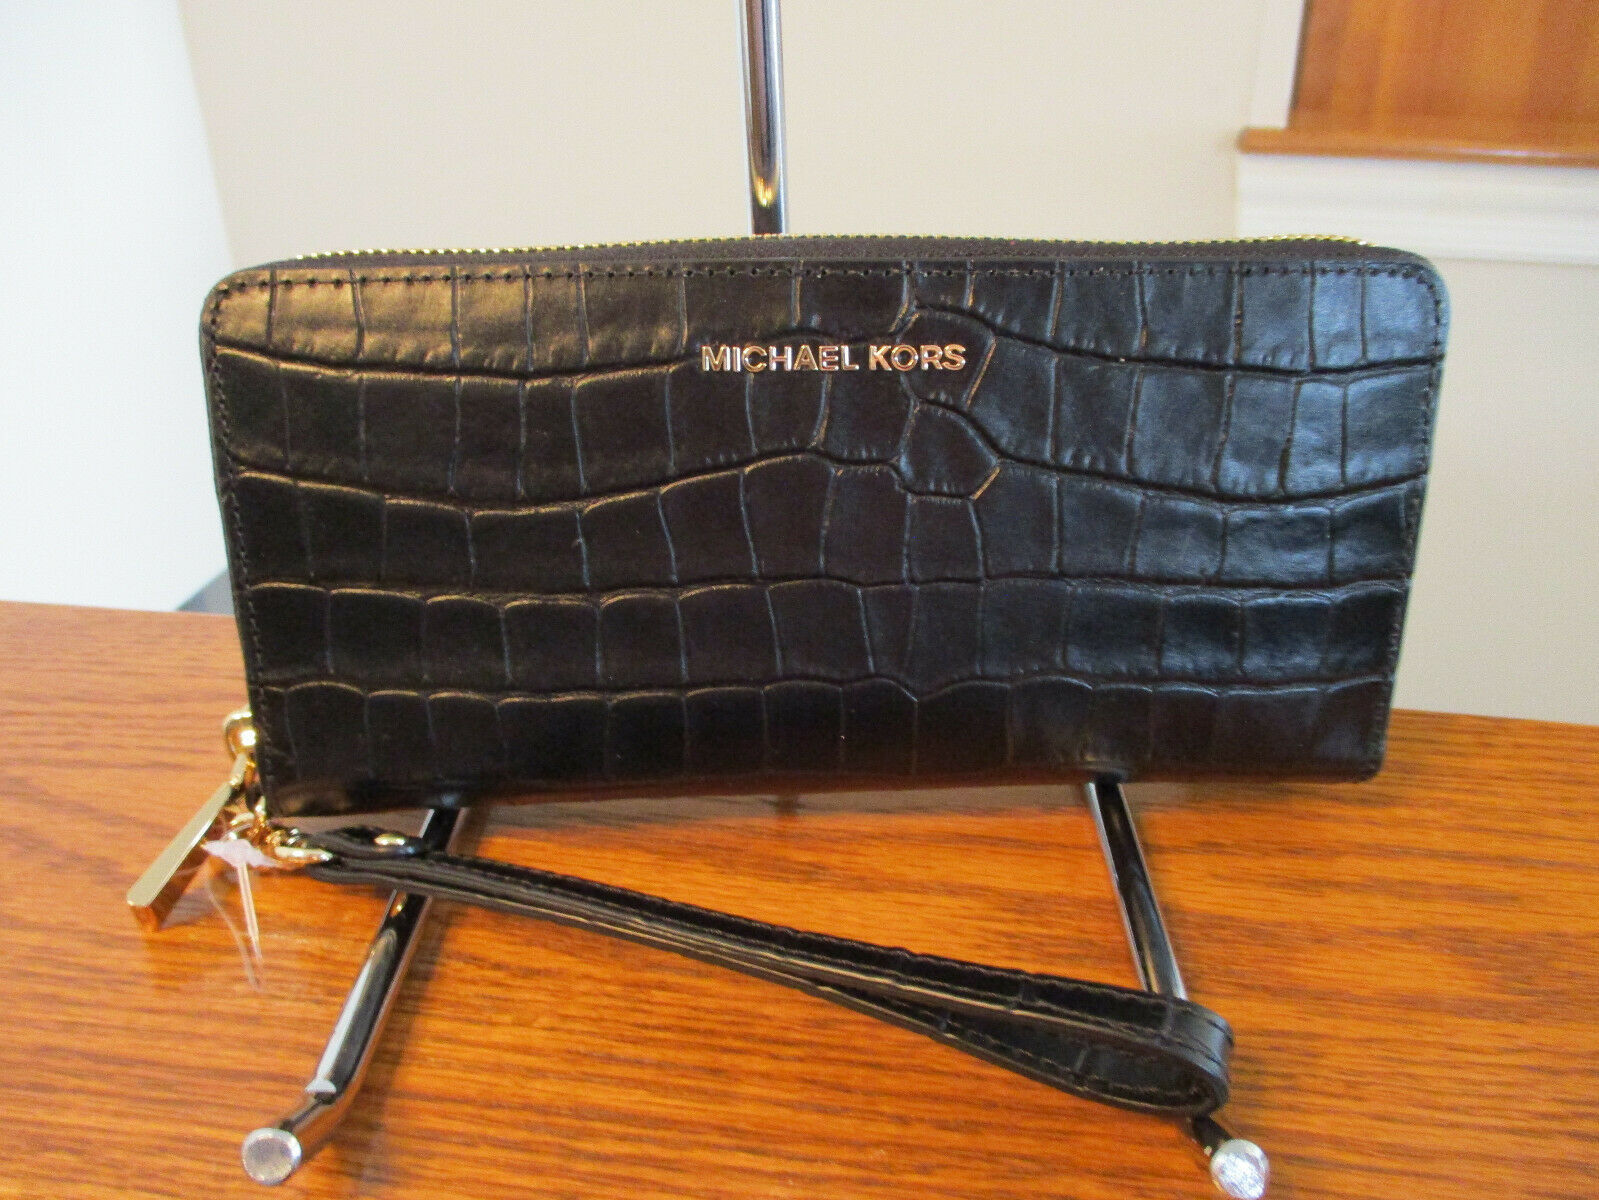 Primary image for Michael Kors Travel Croco Leather Continental Zip Wallet Jet Set Black NWT $178